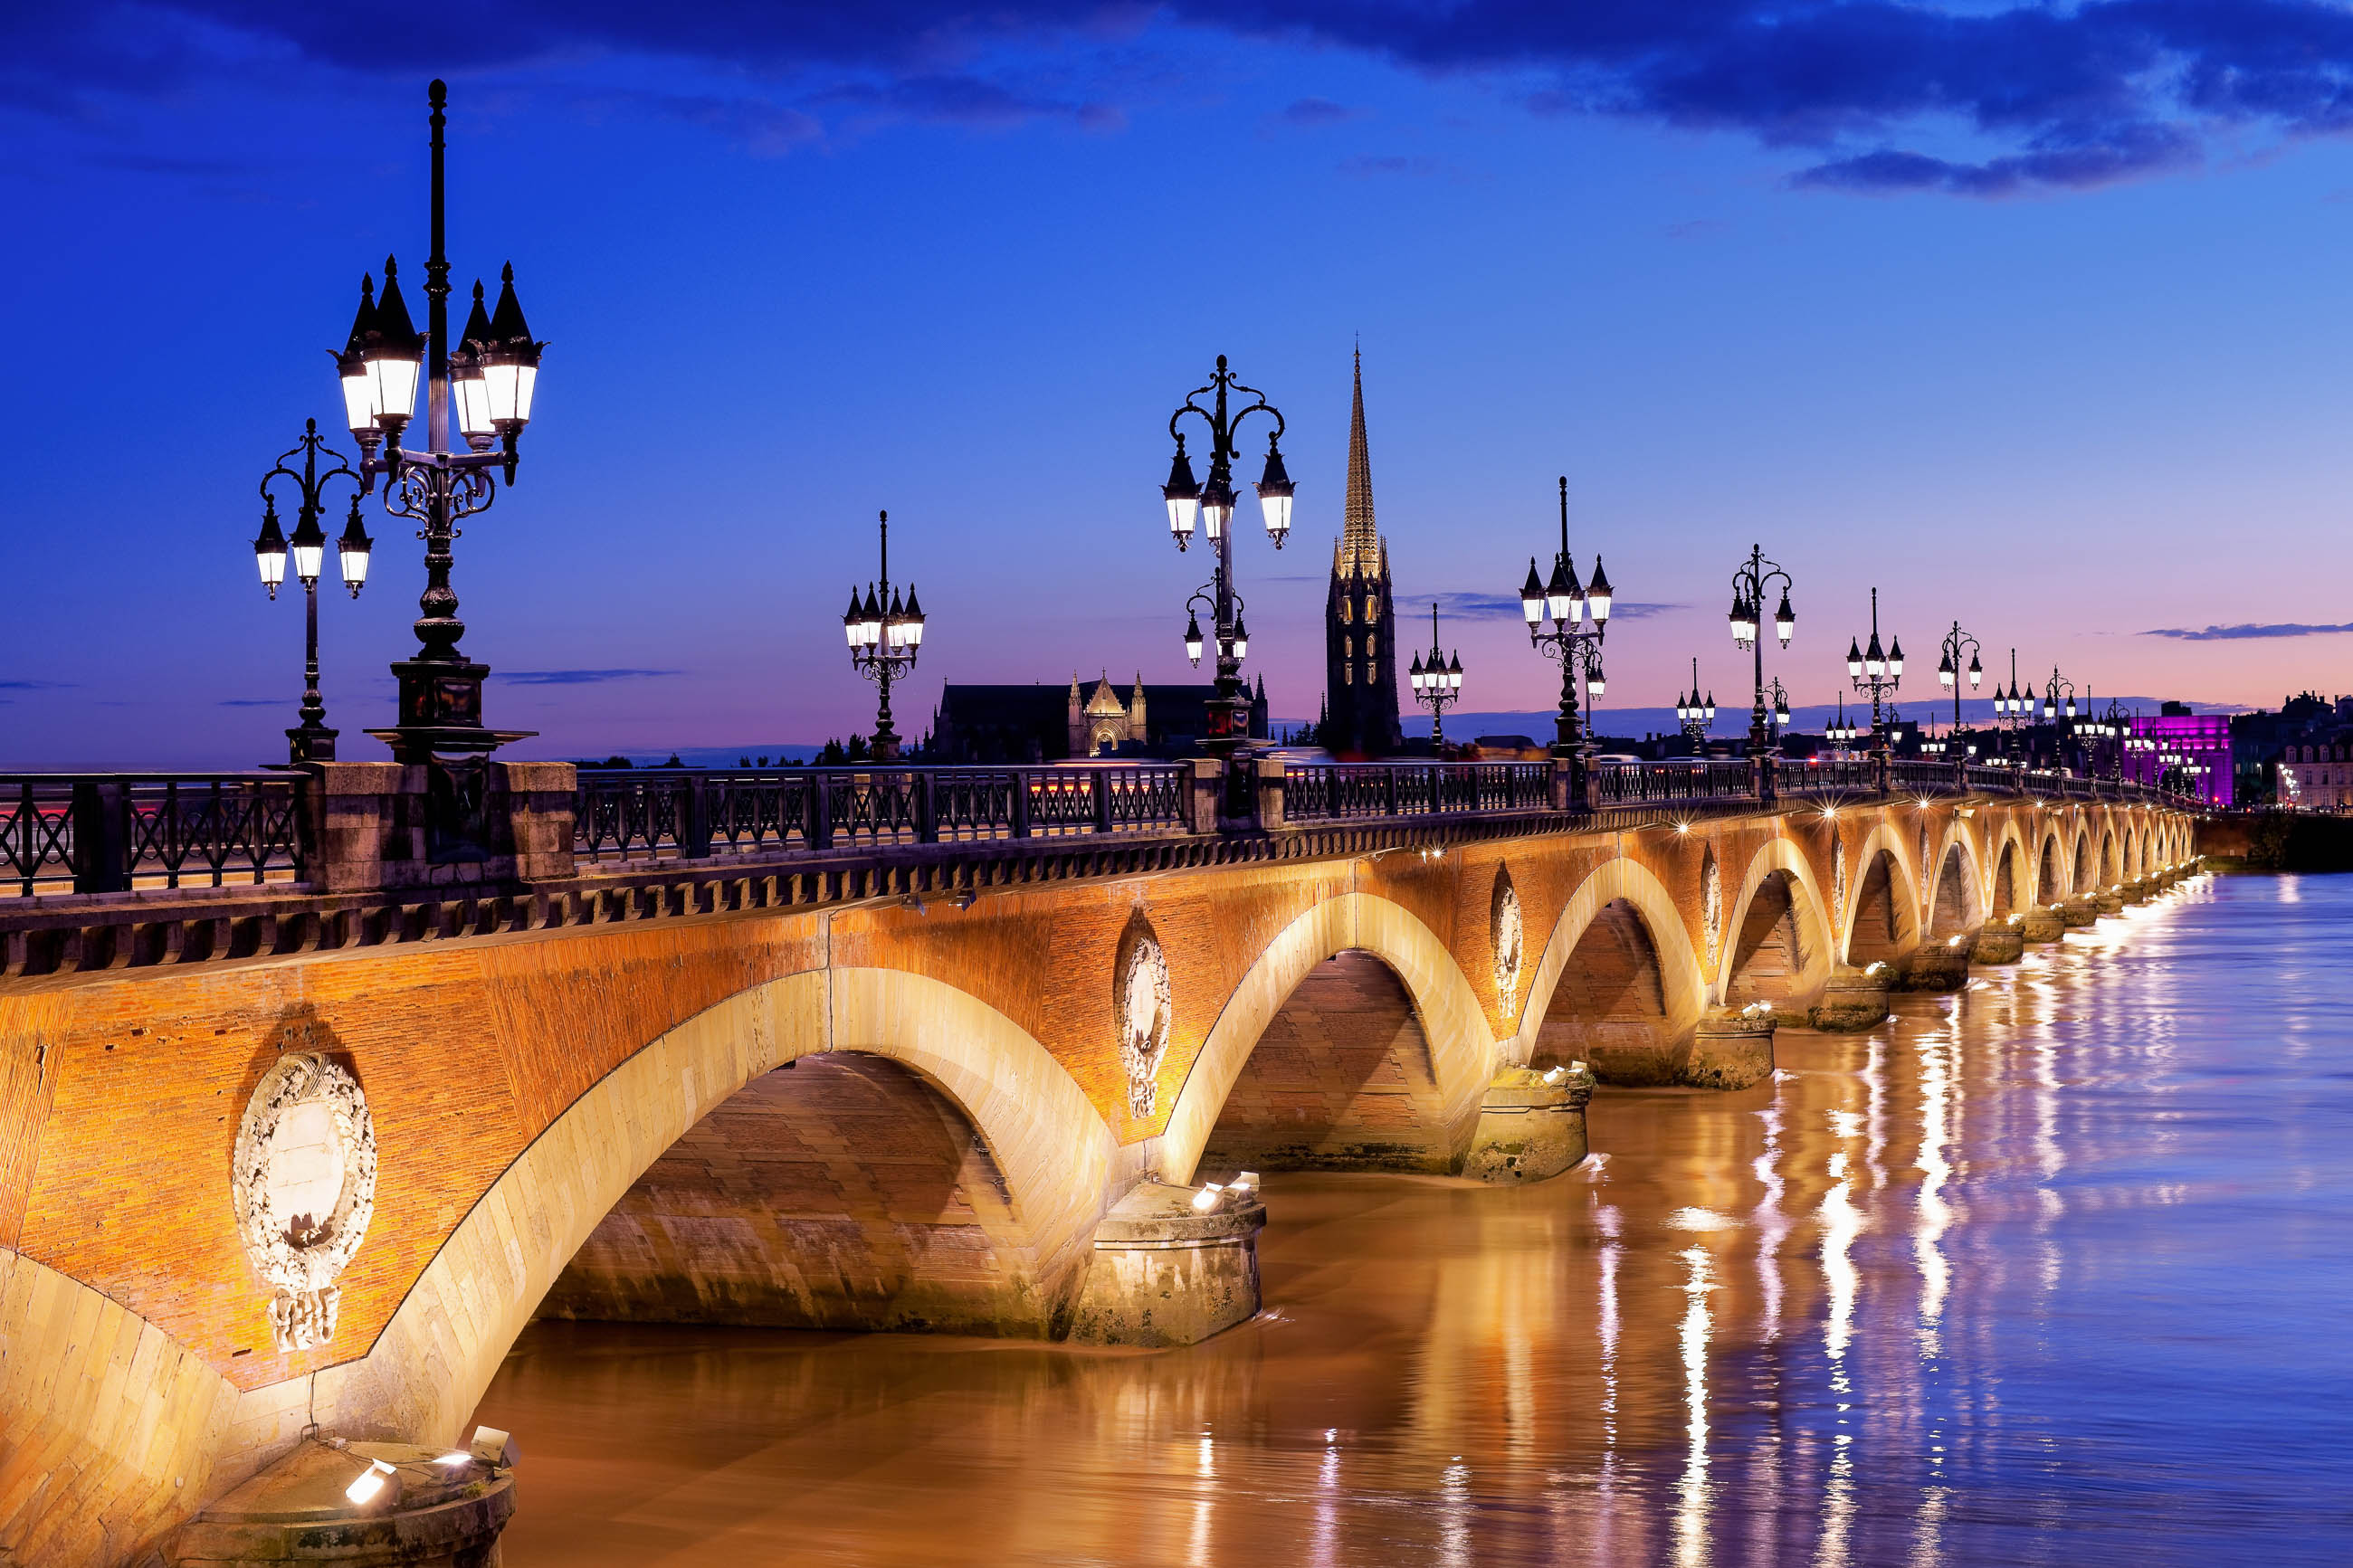 bilder pont de pierre in bordeaux frankreich franks travelbox. Black Bedroom Furniture Sets. Home Design Ideas